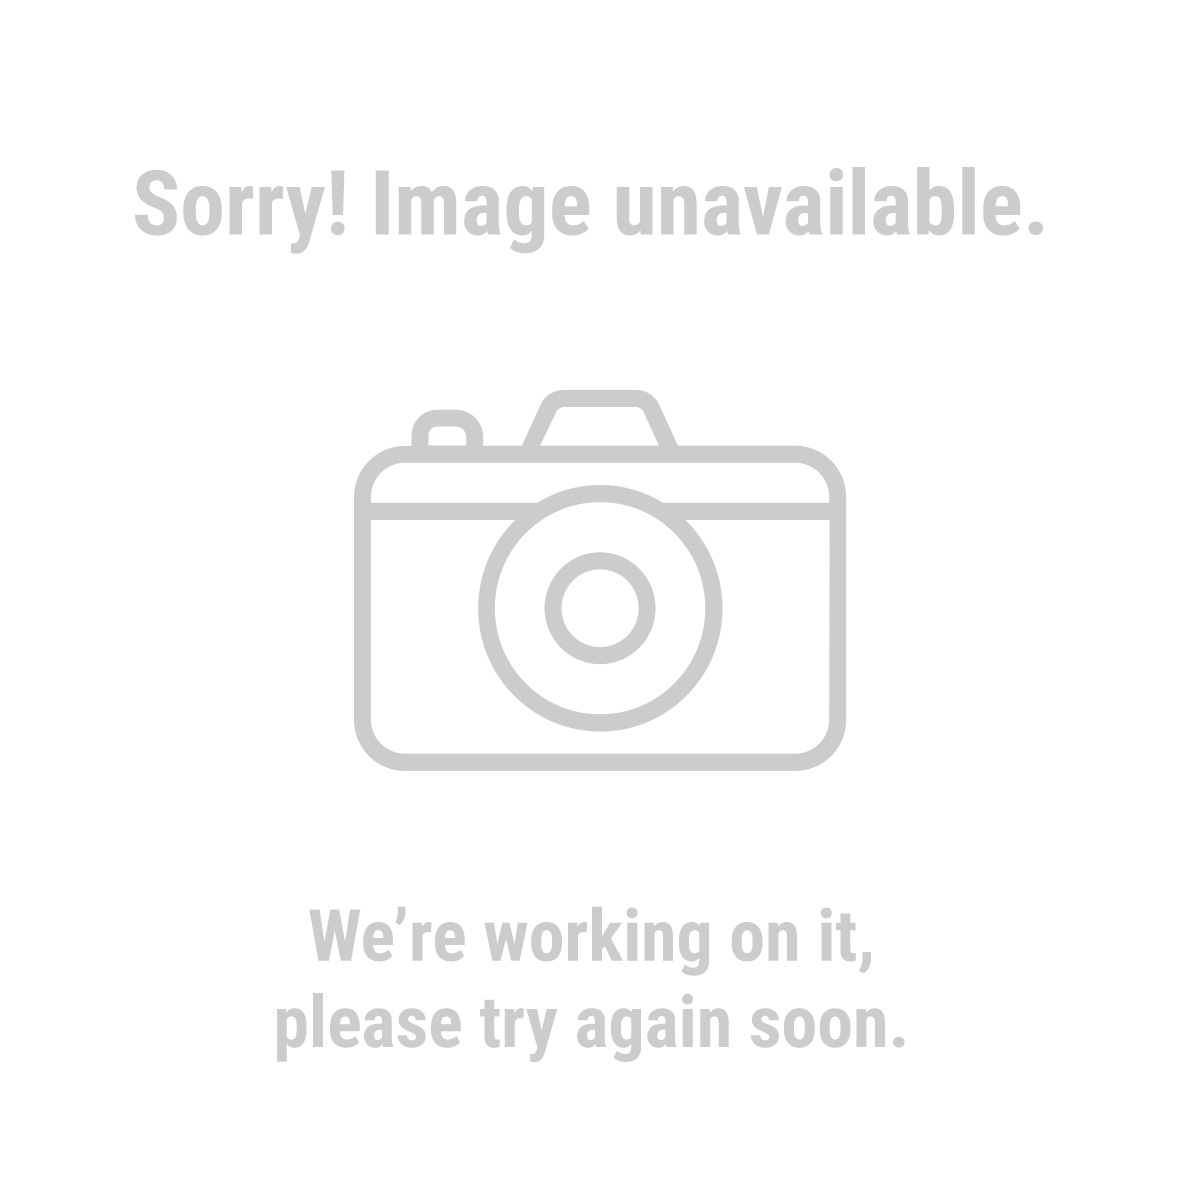 Image result for wood lathe images